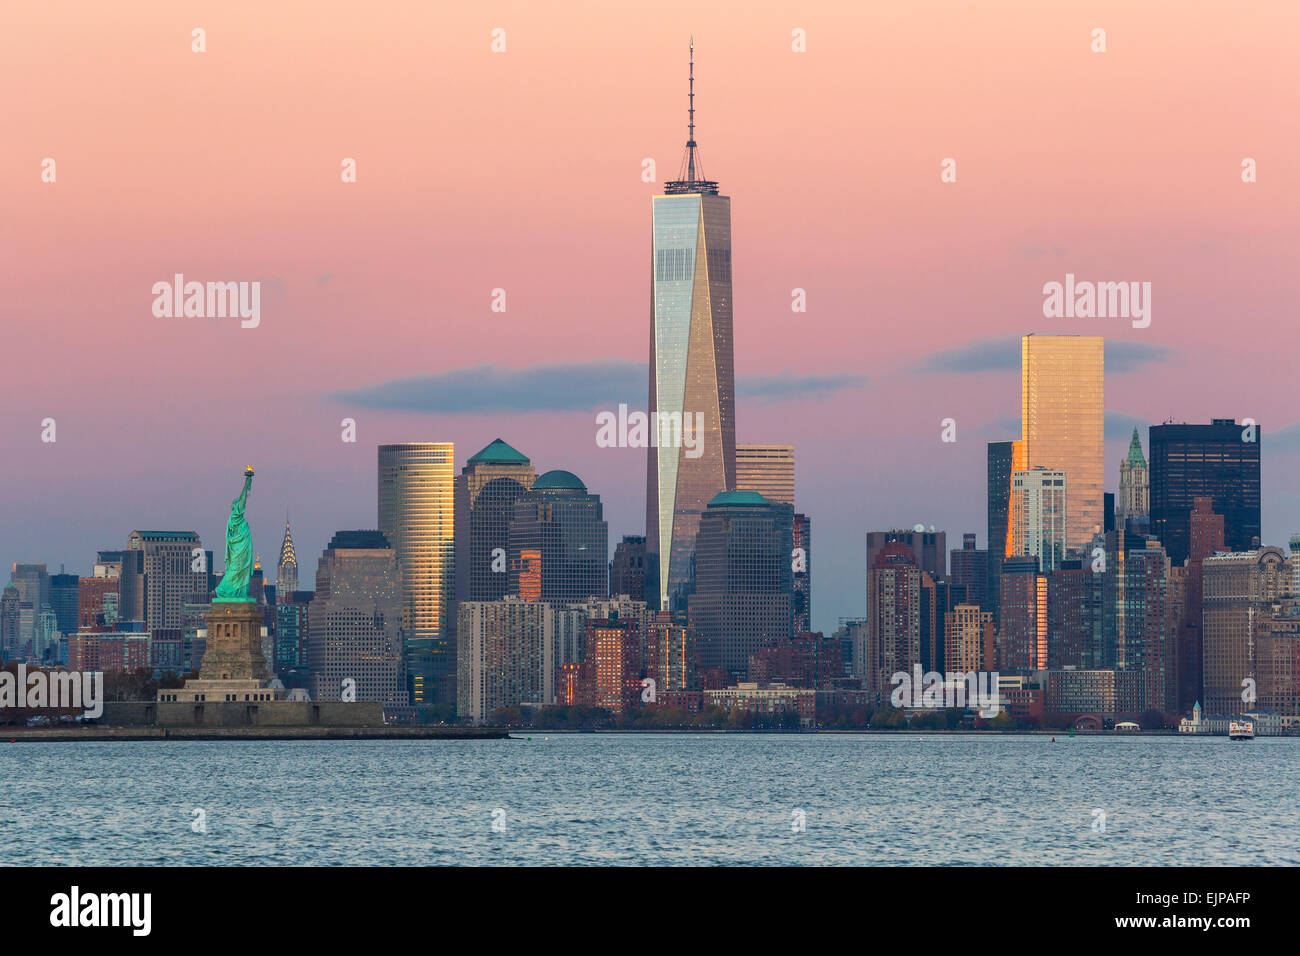 Statue of Liberty, One World Trade Center and Downtown Manhattan across the Hudson River, New York, Manhattan, United - Stock Image